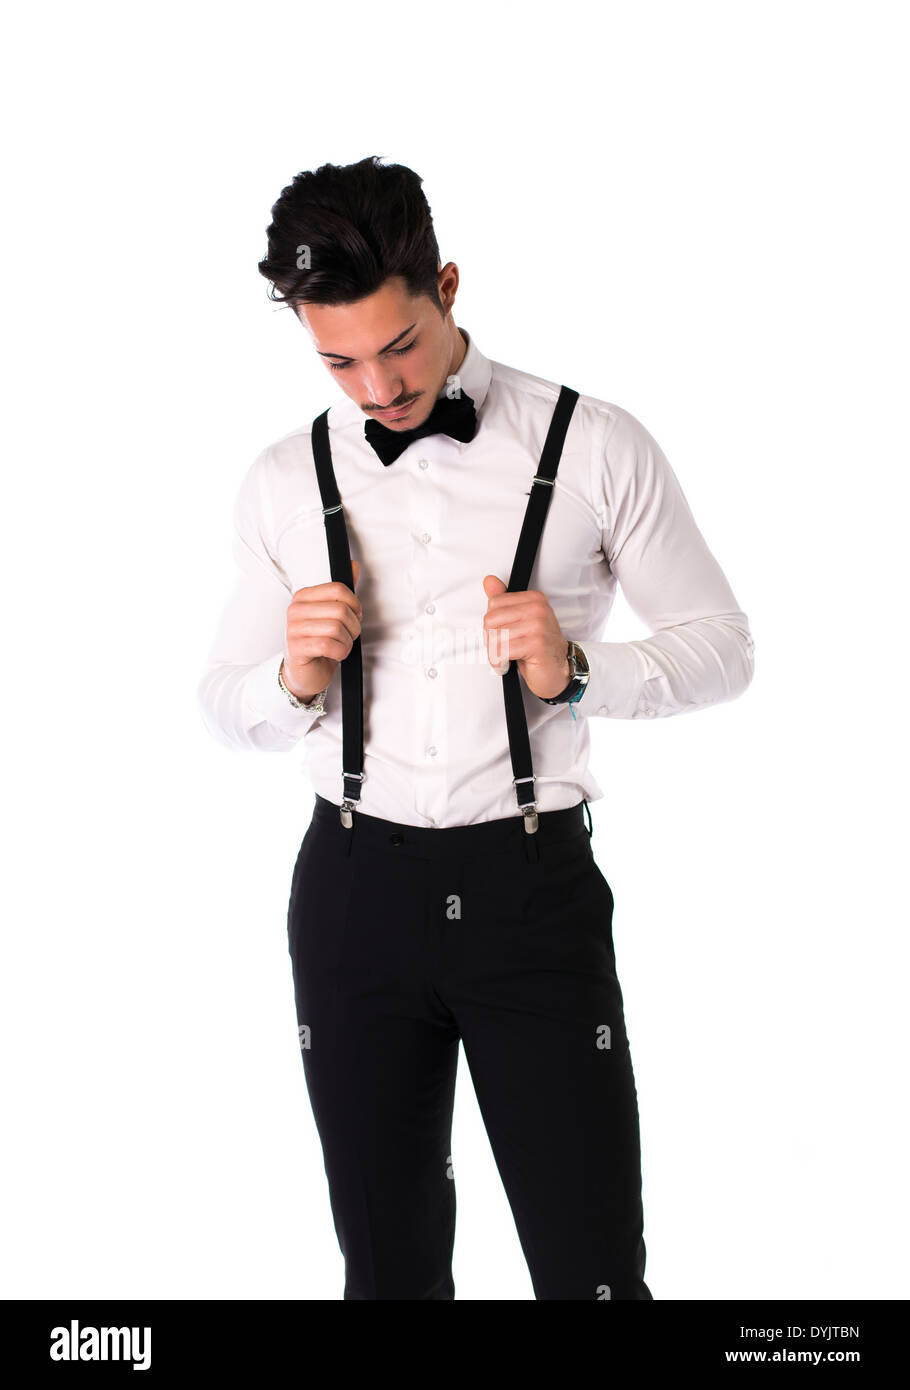 edce01a14511 Handsome elegant young man with suit, bow-tie and suspenders, isolated on  white